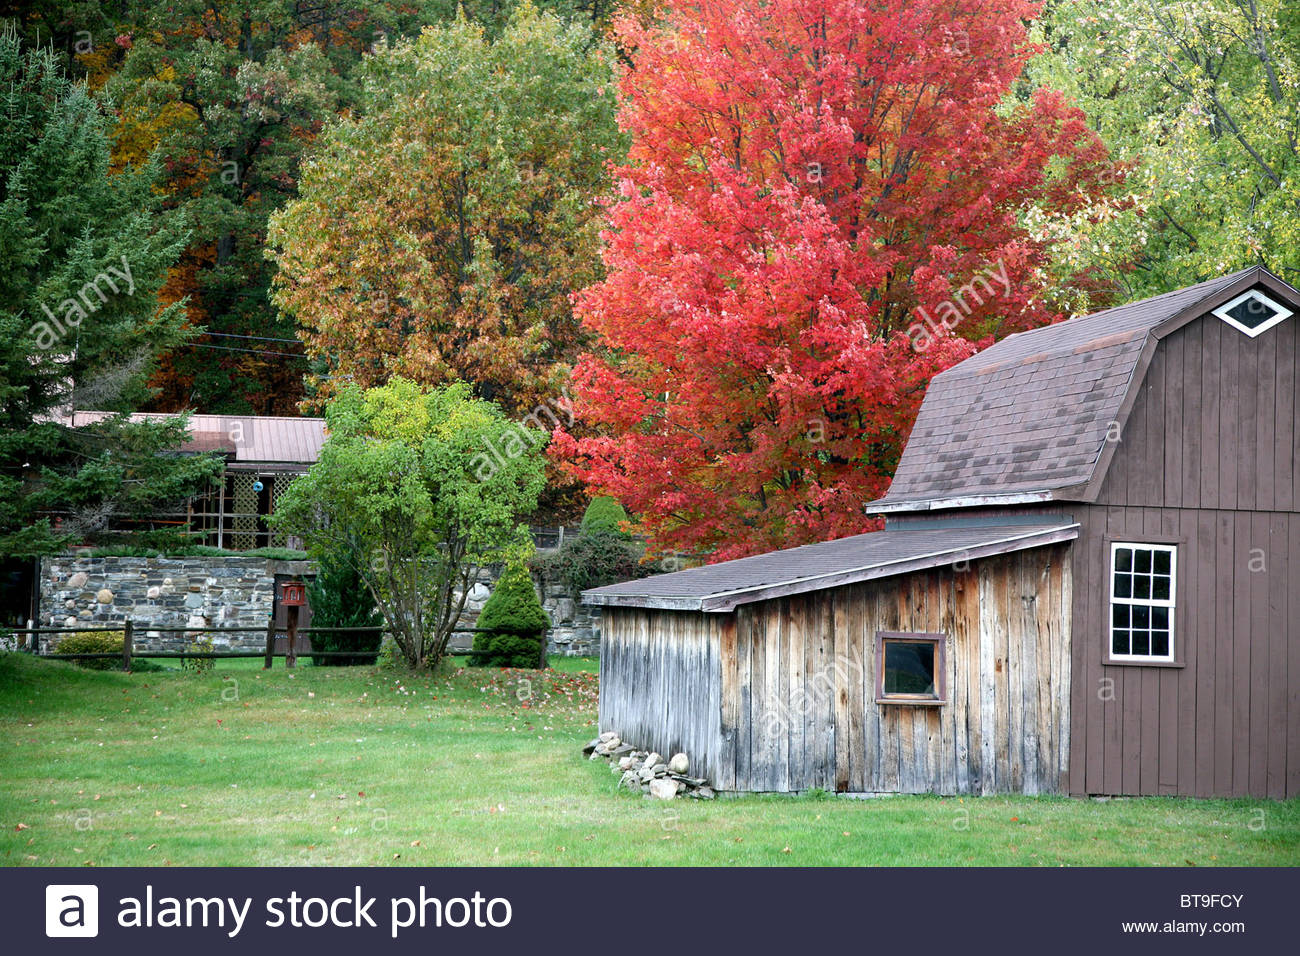 Leaves Turn Color On Trees Stock Photos & Leaves Turn Color On Trees ...